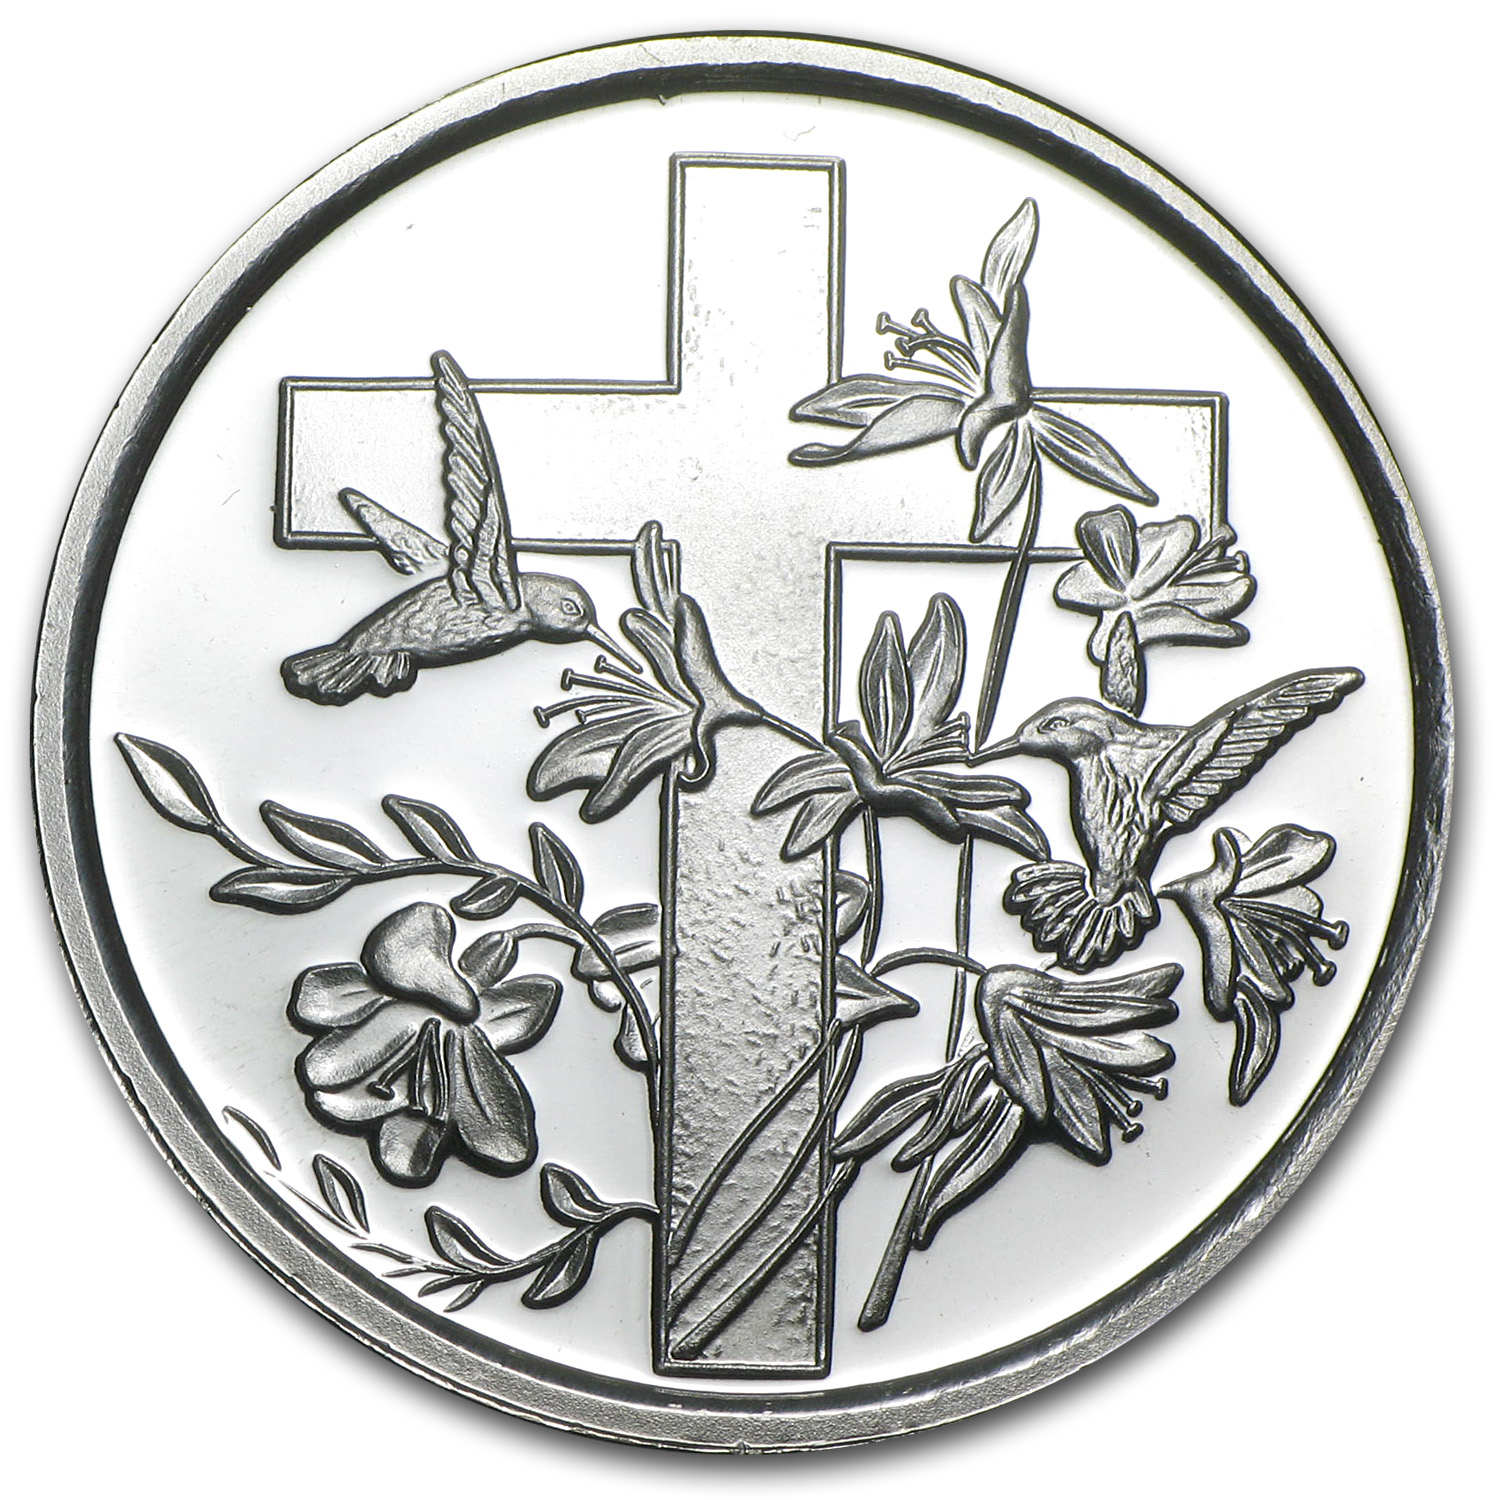 1 oz Silver Rounds - Religious Cross (w/Box & Capsule)